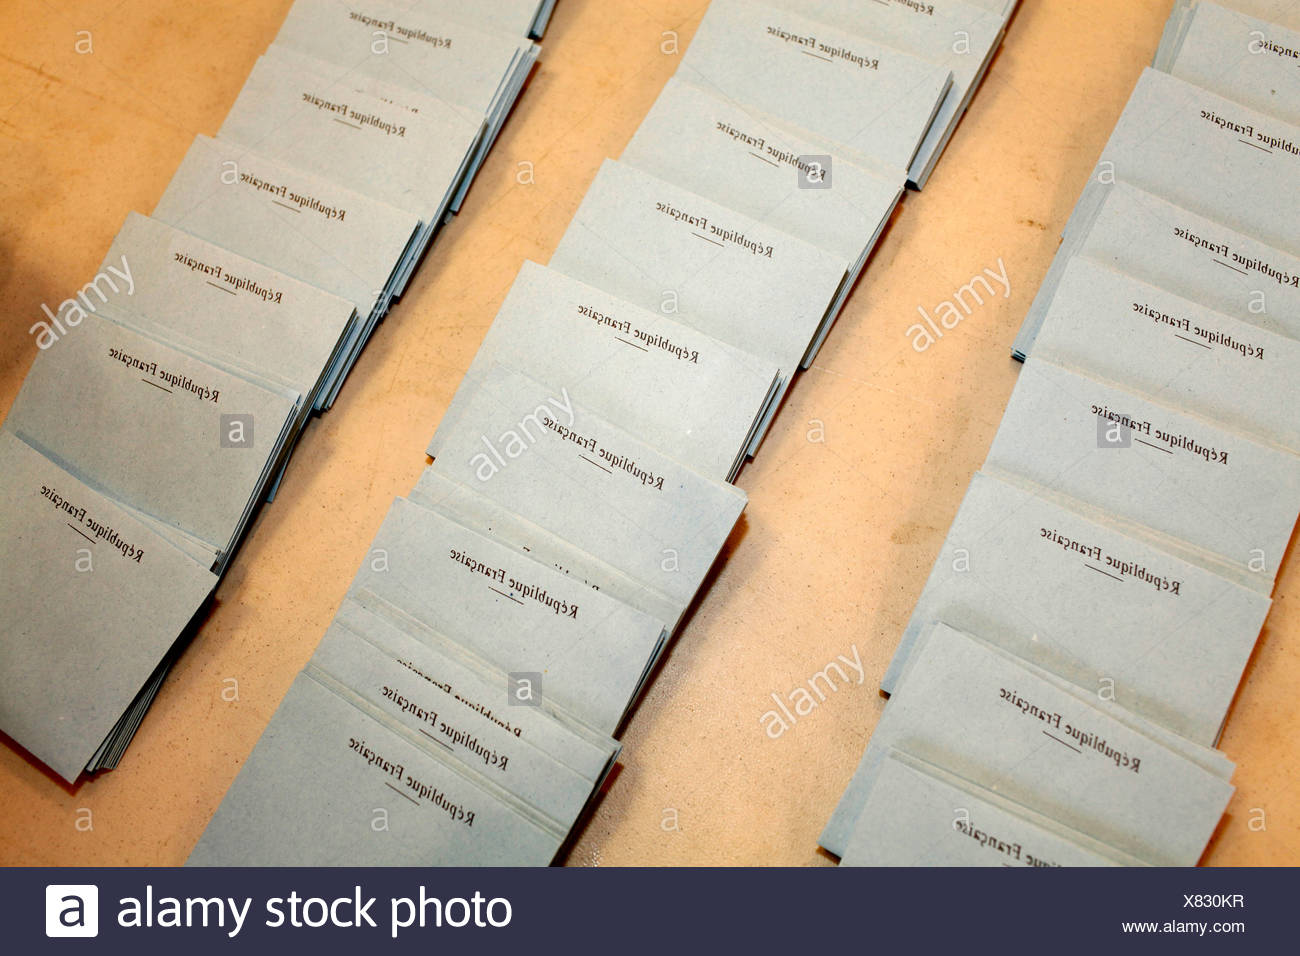 French presidential election - ballots Montrouge. France. - Stock Image